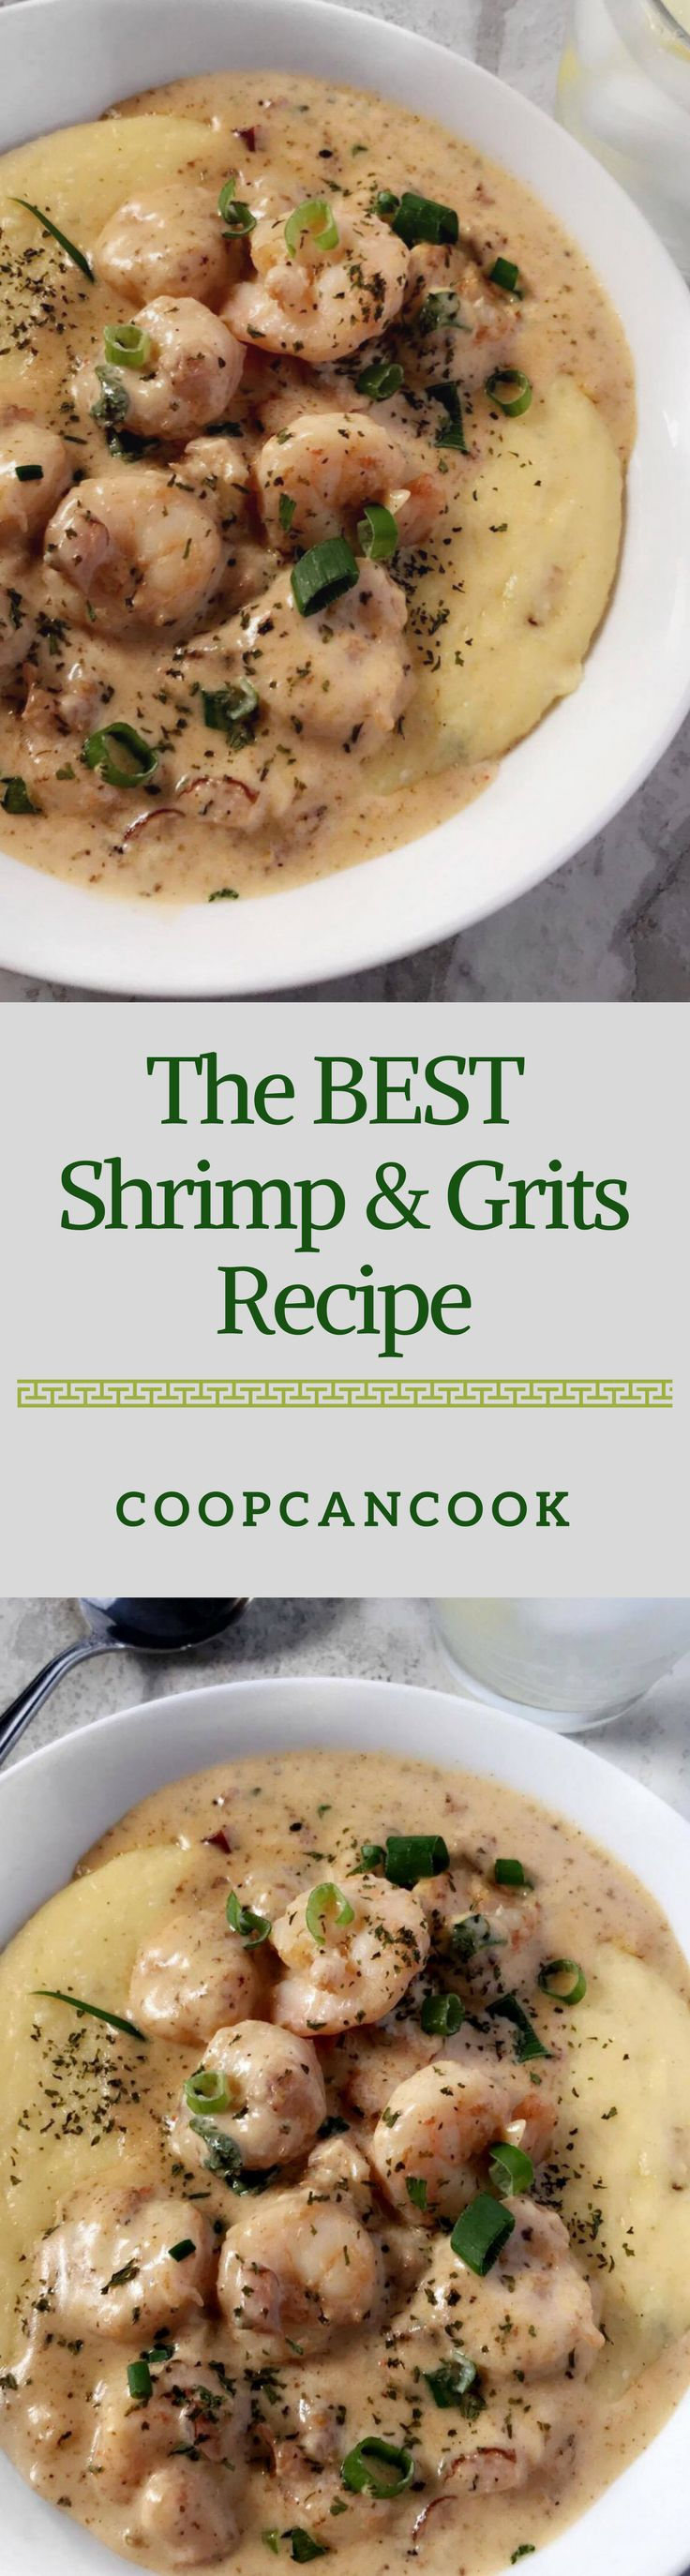 802 best entrees images on pinterest afternoon snacks american